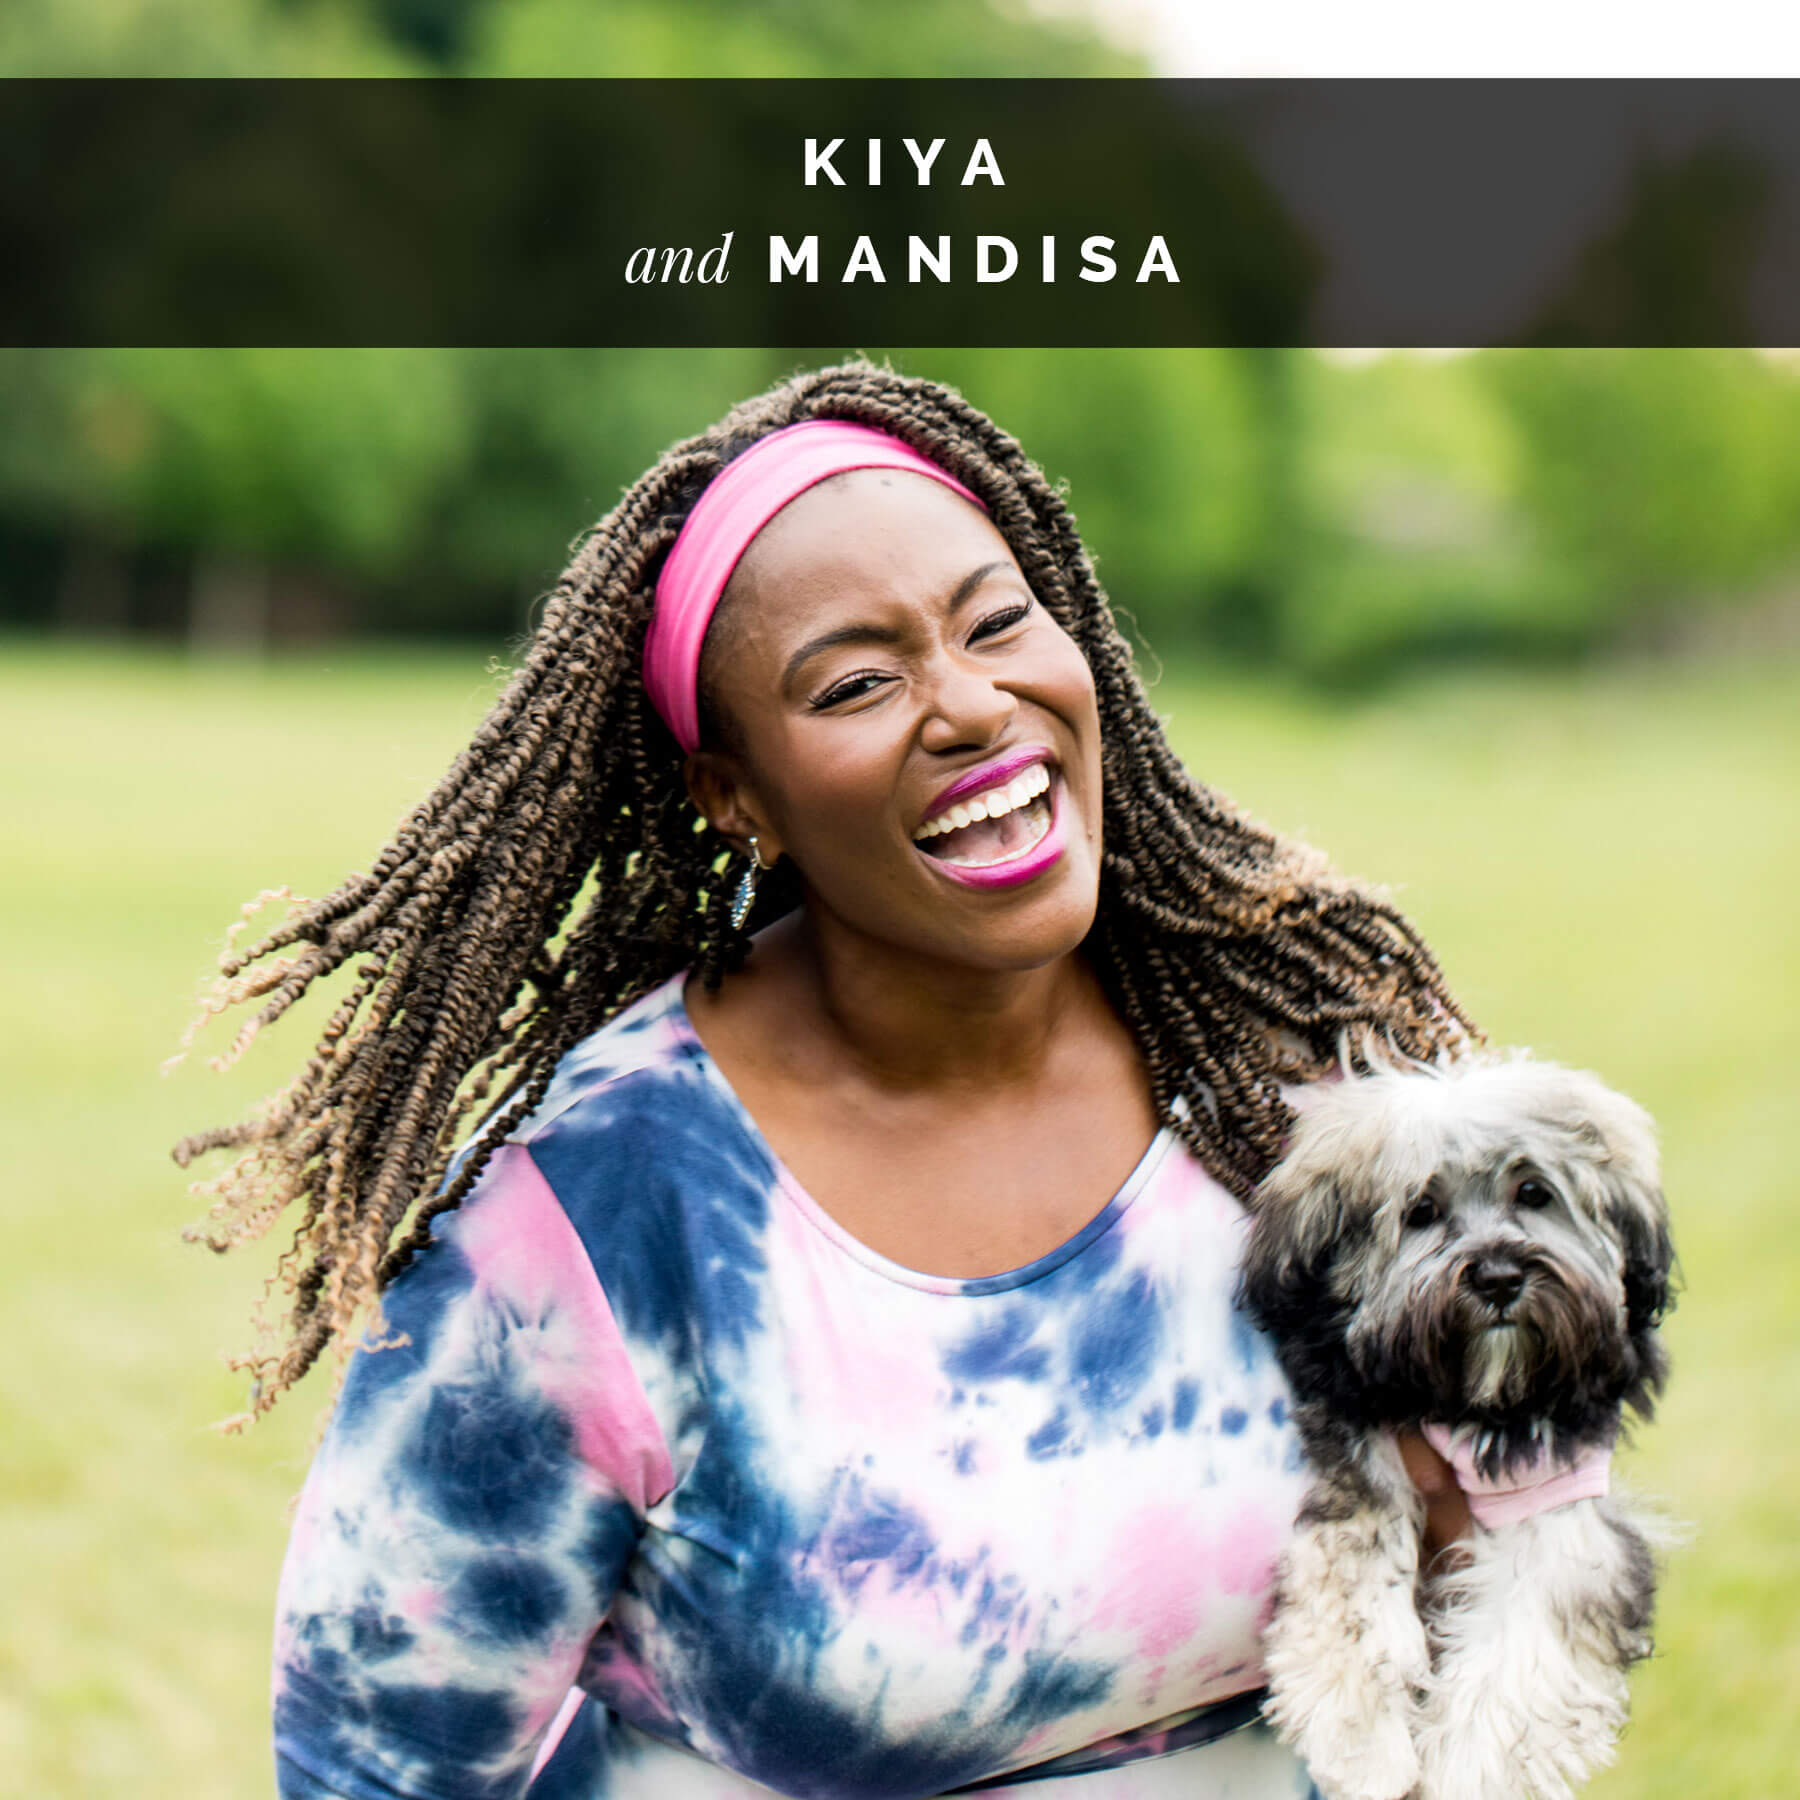 Mandisa and her dog, Kiya | Celebrity Dogs and Their People by Sara Kauss